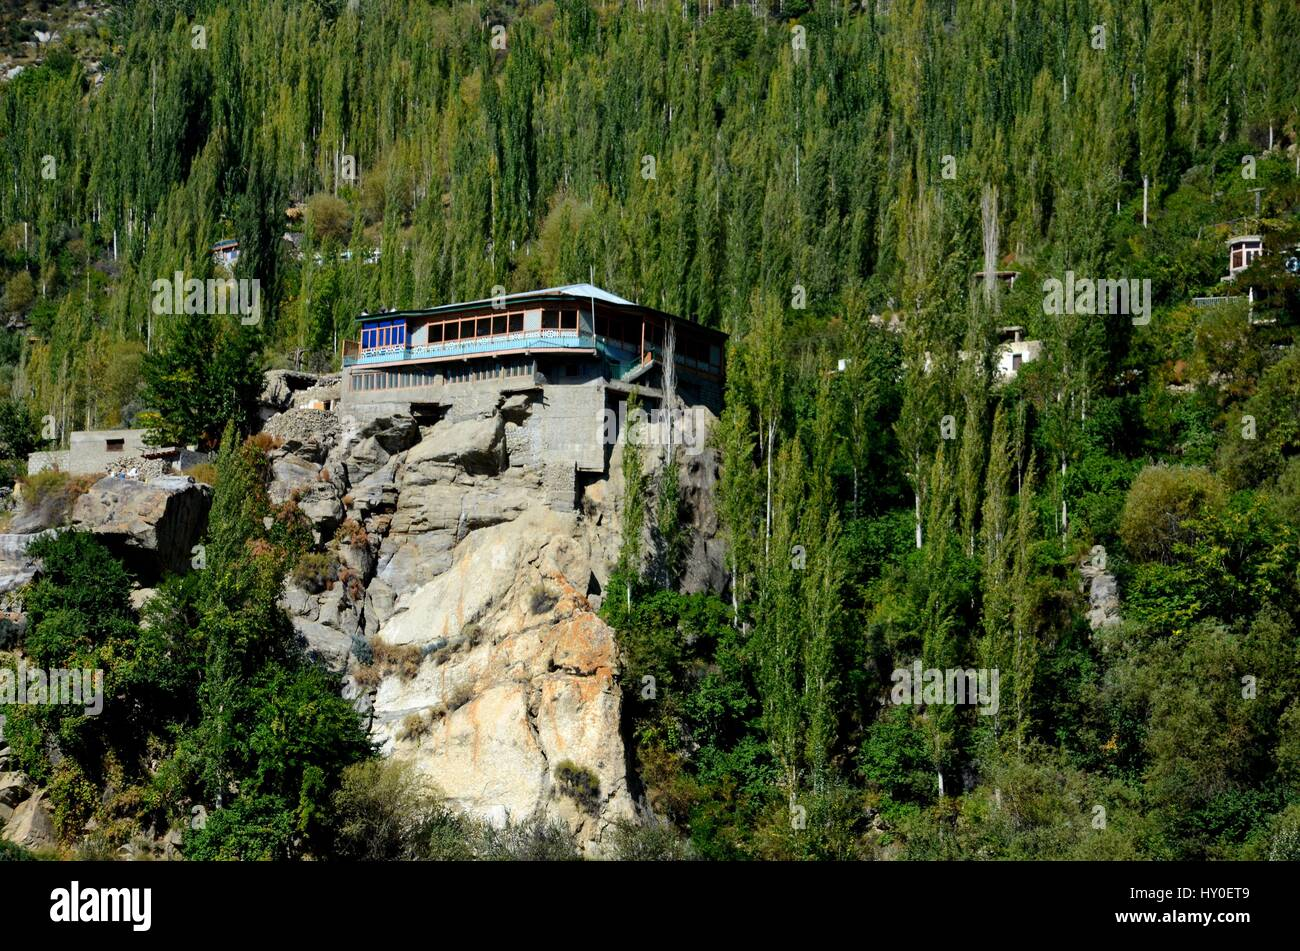 A building stands on top of a rocky ledge in Hunza Valley Pakistan - Stock Image